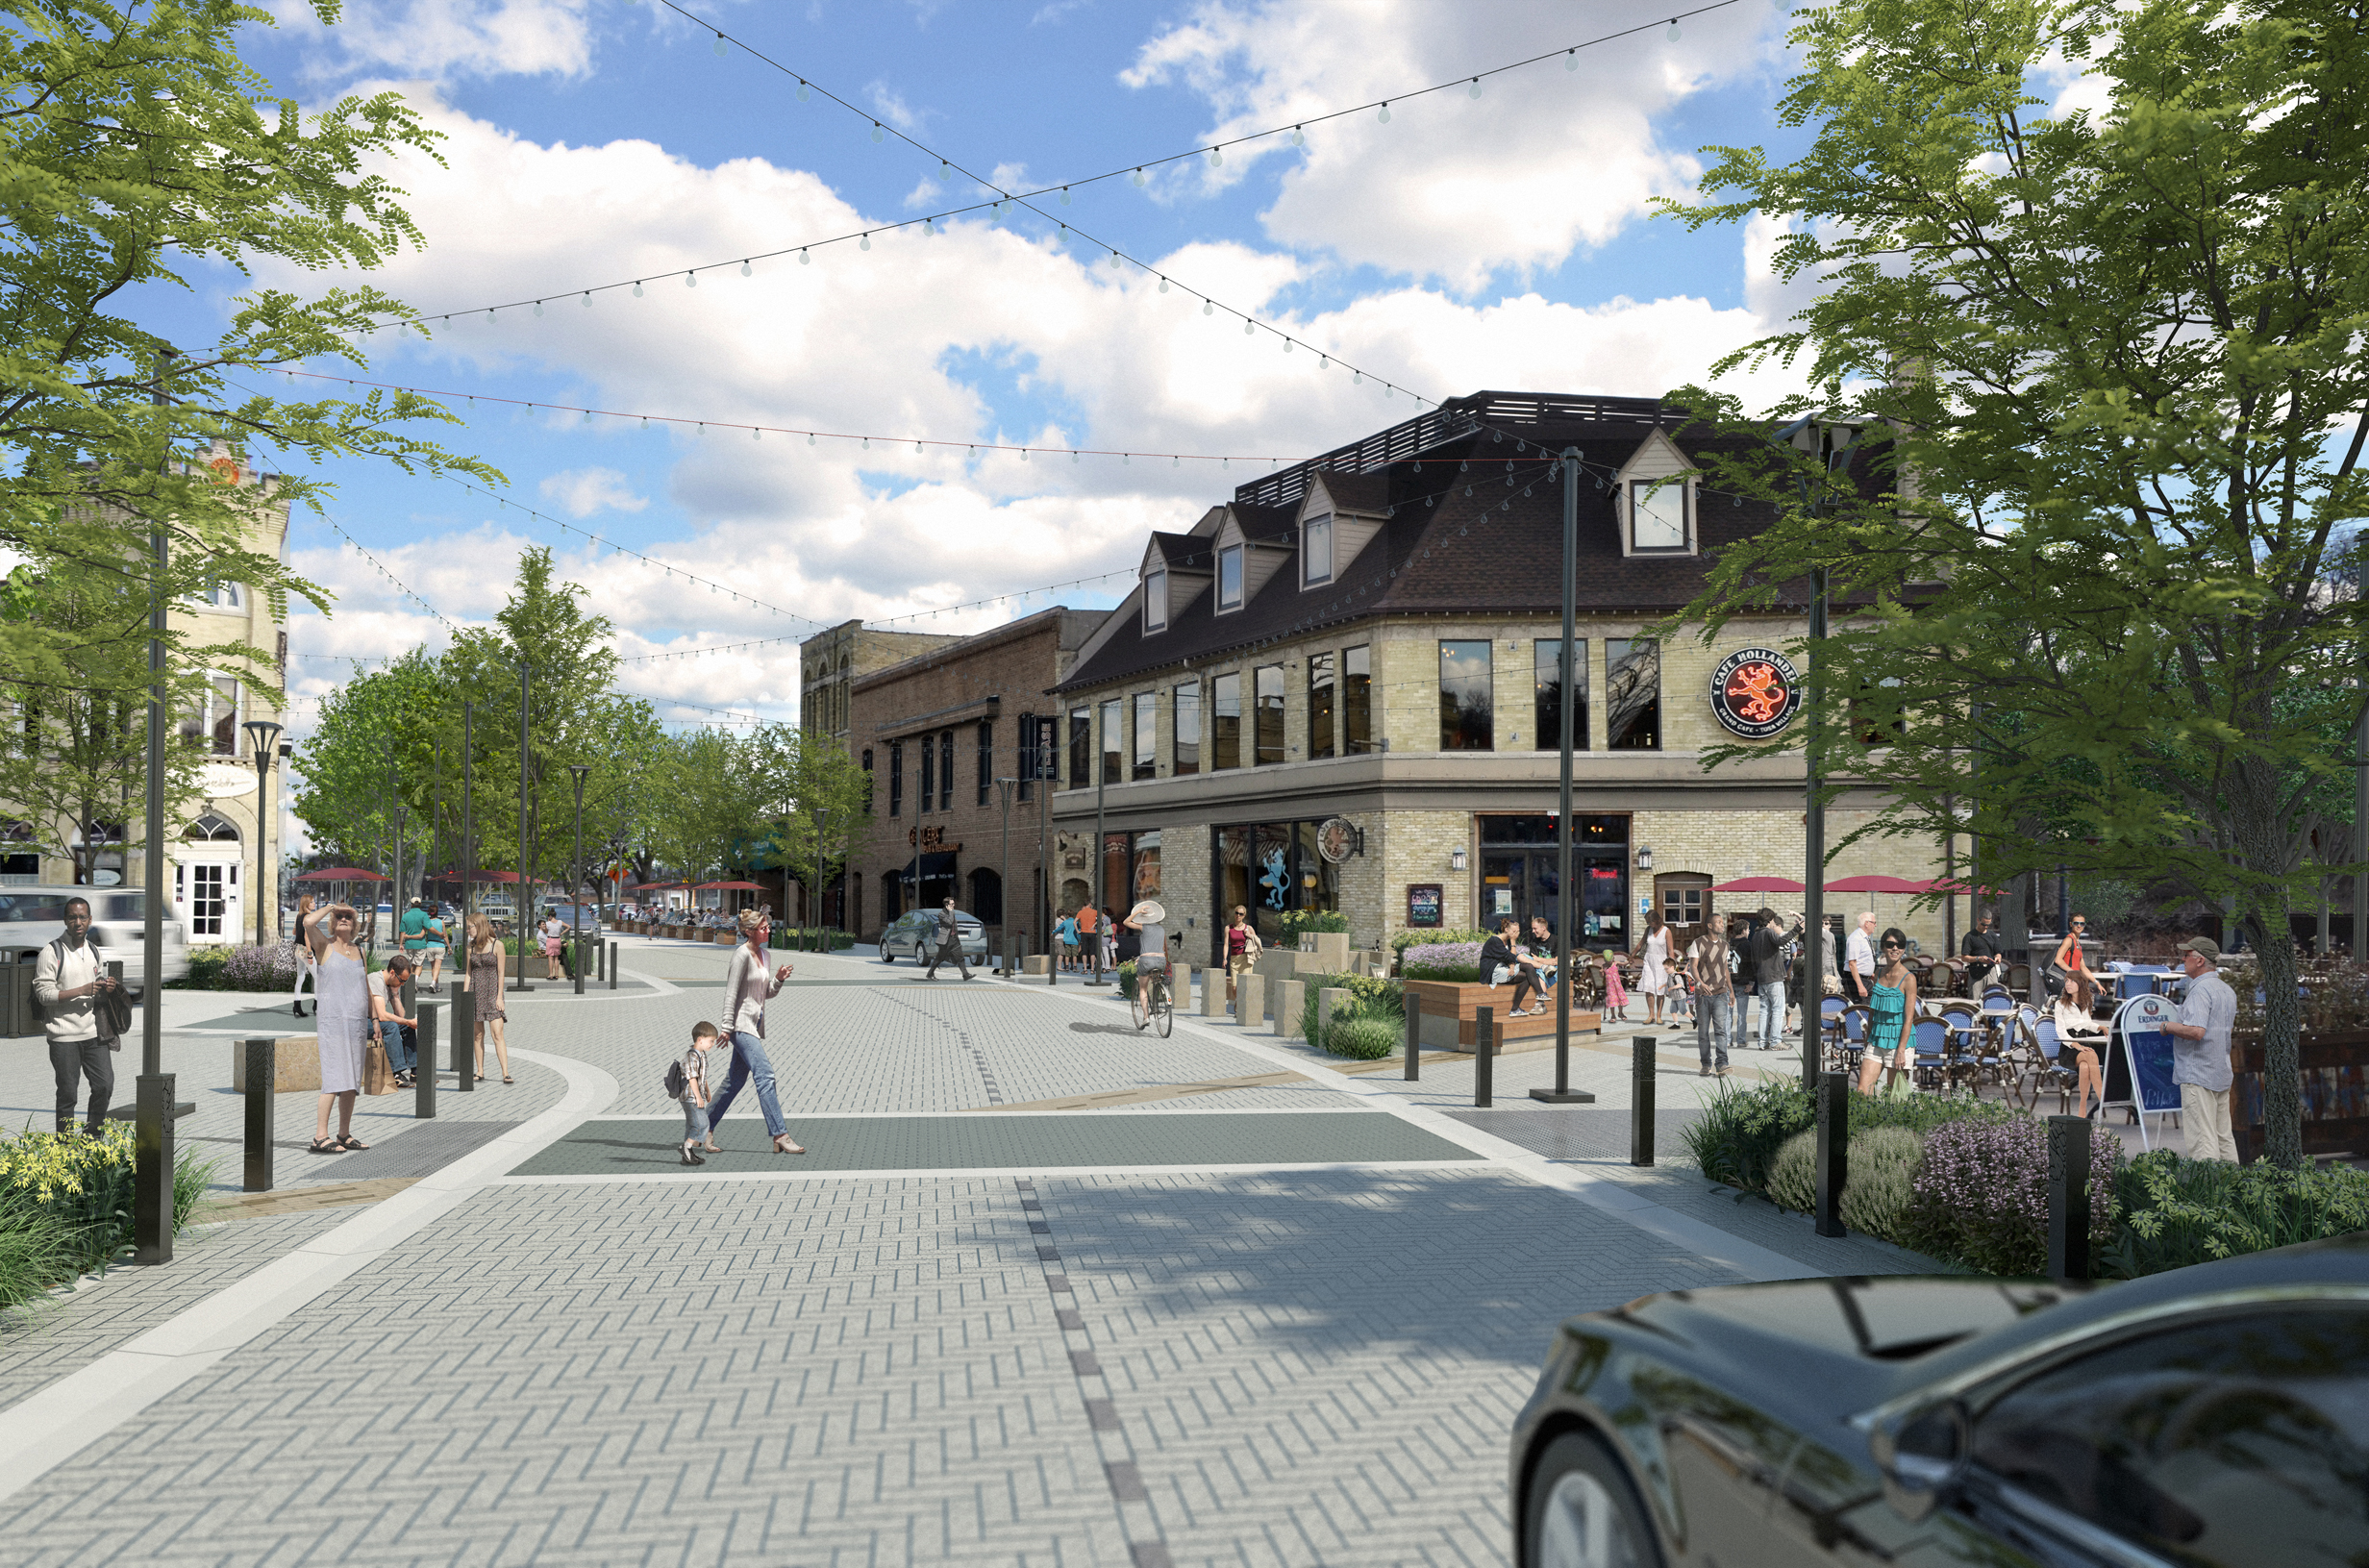 Careful attention was paid to the selection of streetscape materials that are compatible with architectural features in The Village as well as the natural elements found along the Menomonee River.